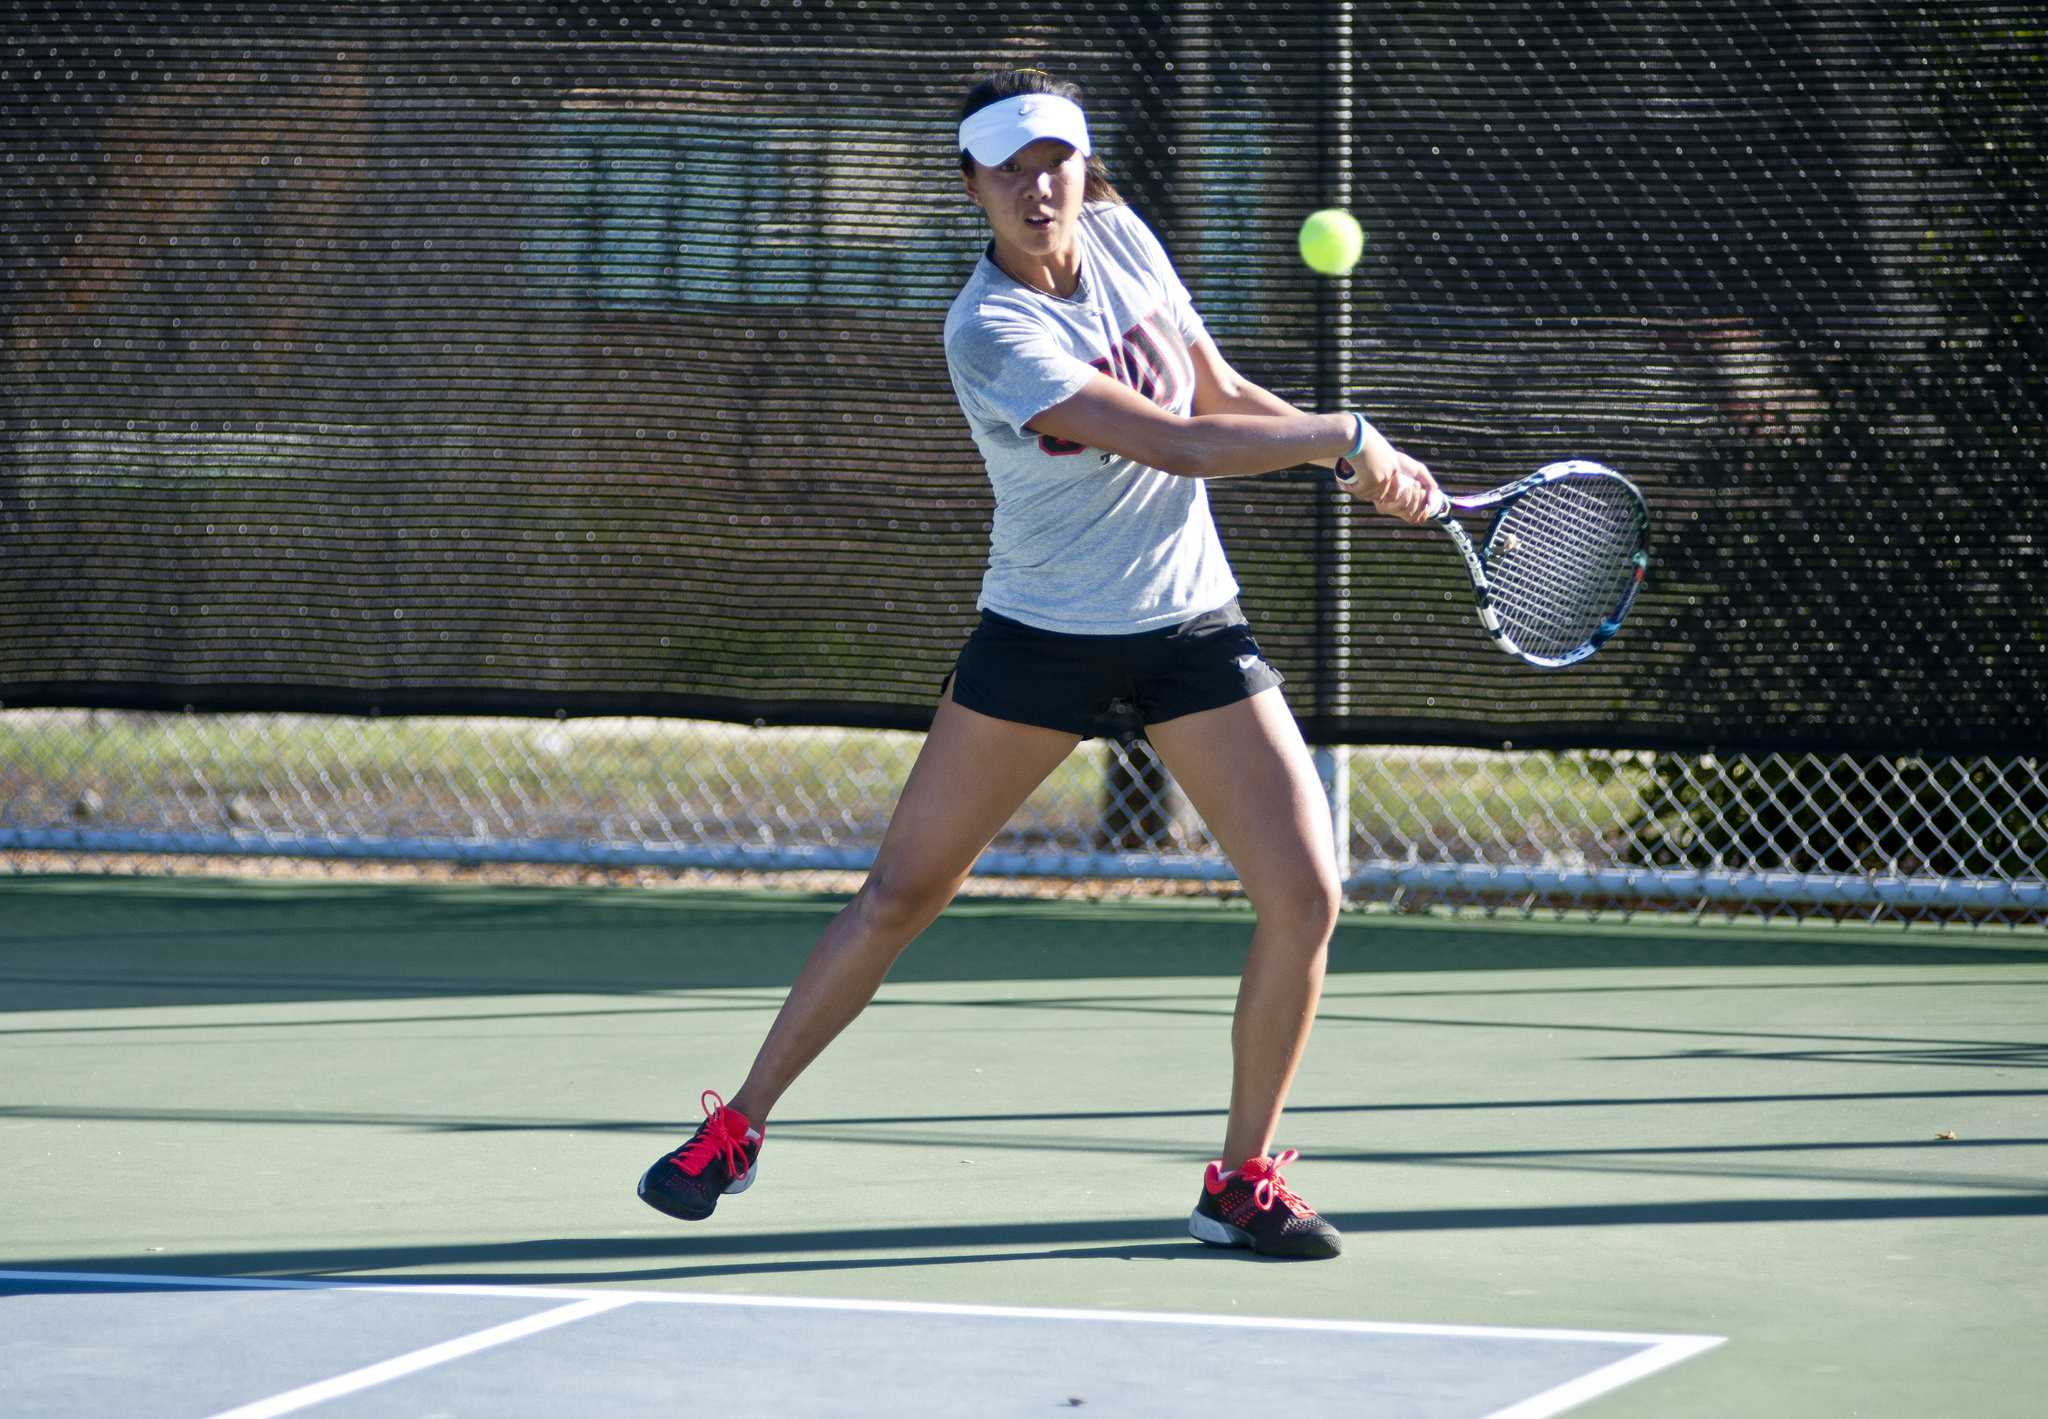 Women's Tennis: CSUN on a roll after consecutive 4-3 wins at Cal Poly and UC Irvine